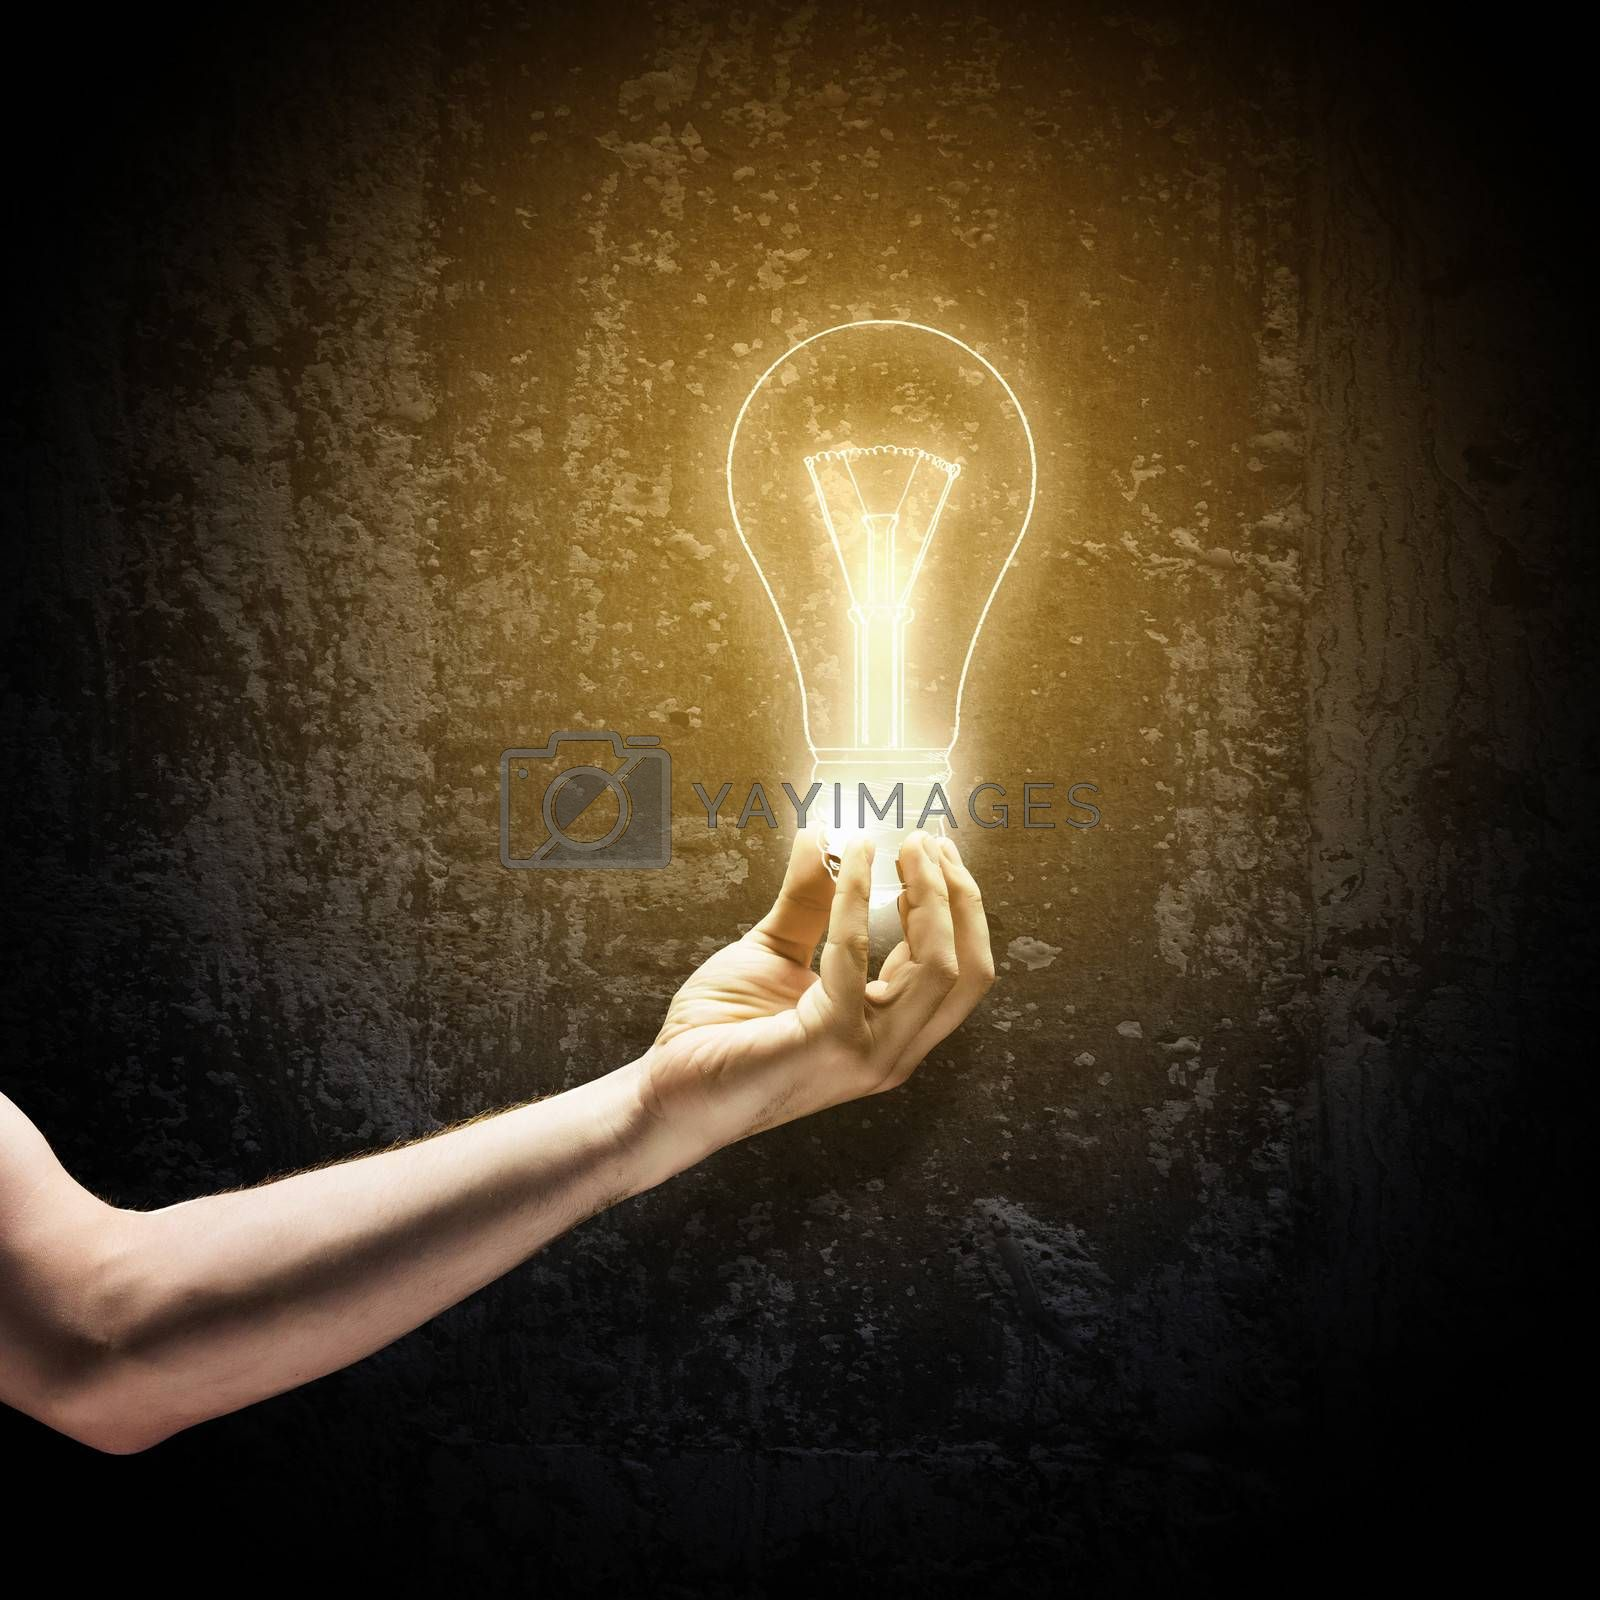 Close up image of human hand holding electrical bulb in darkness